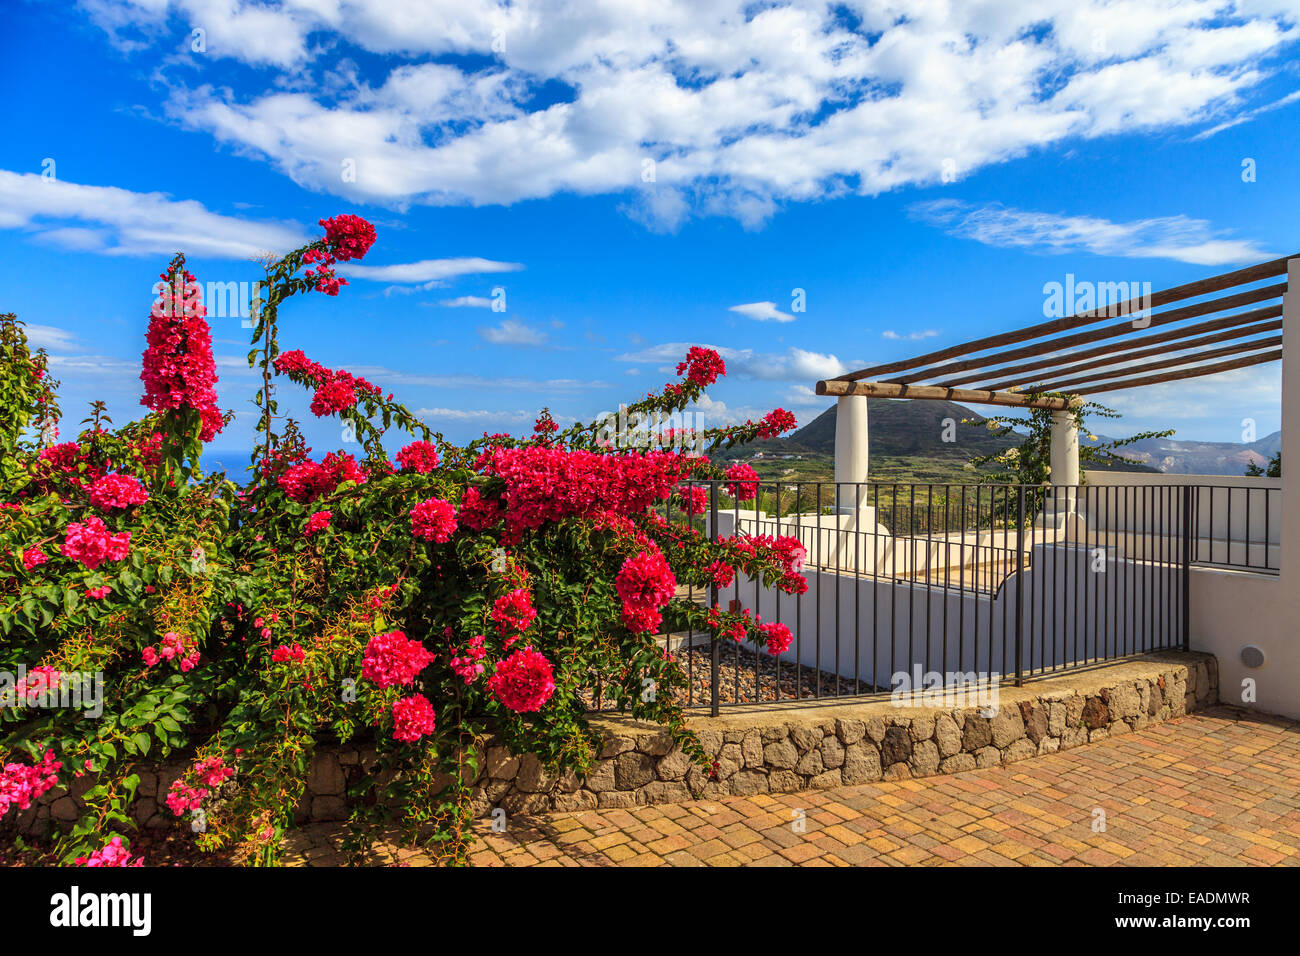 Aeolian house with a beautiful plant of Bougainvillea - Stock Image